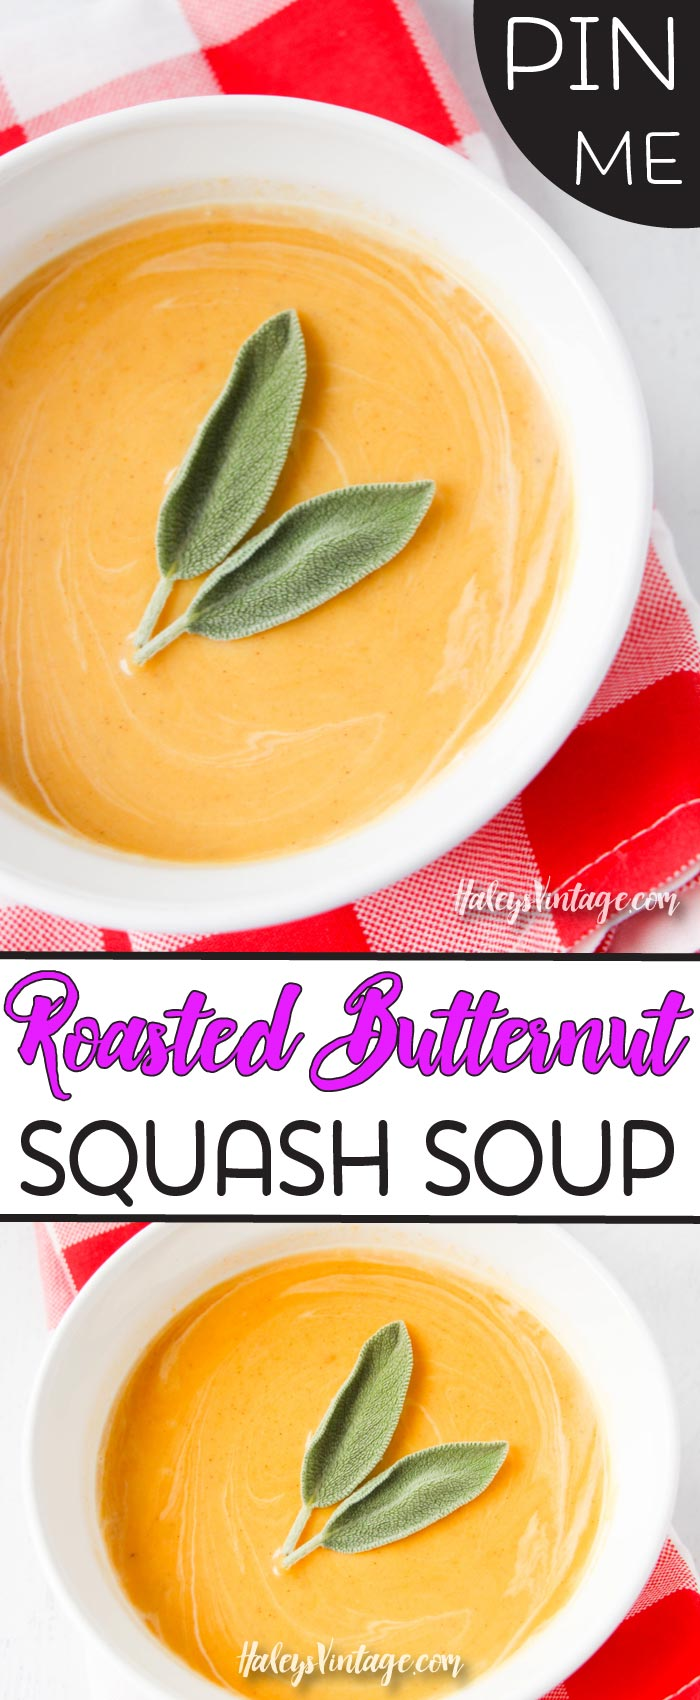 Are you looking for an easy roasted butternut squash soup recipe? Well, look no further... my delicious butternut squash soup will please even the most discerning taste buds! #butternutsquashsoup #recipe #onepotmeal